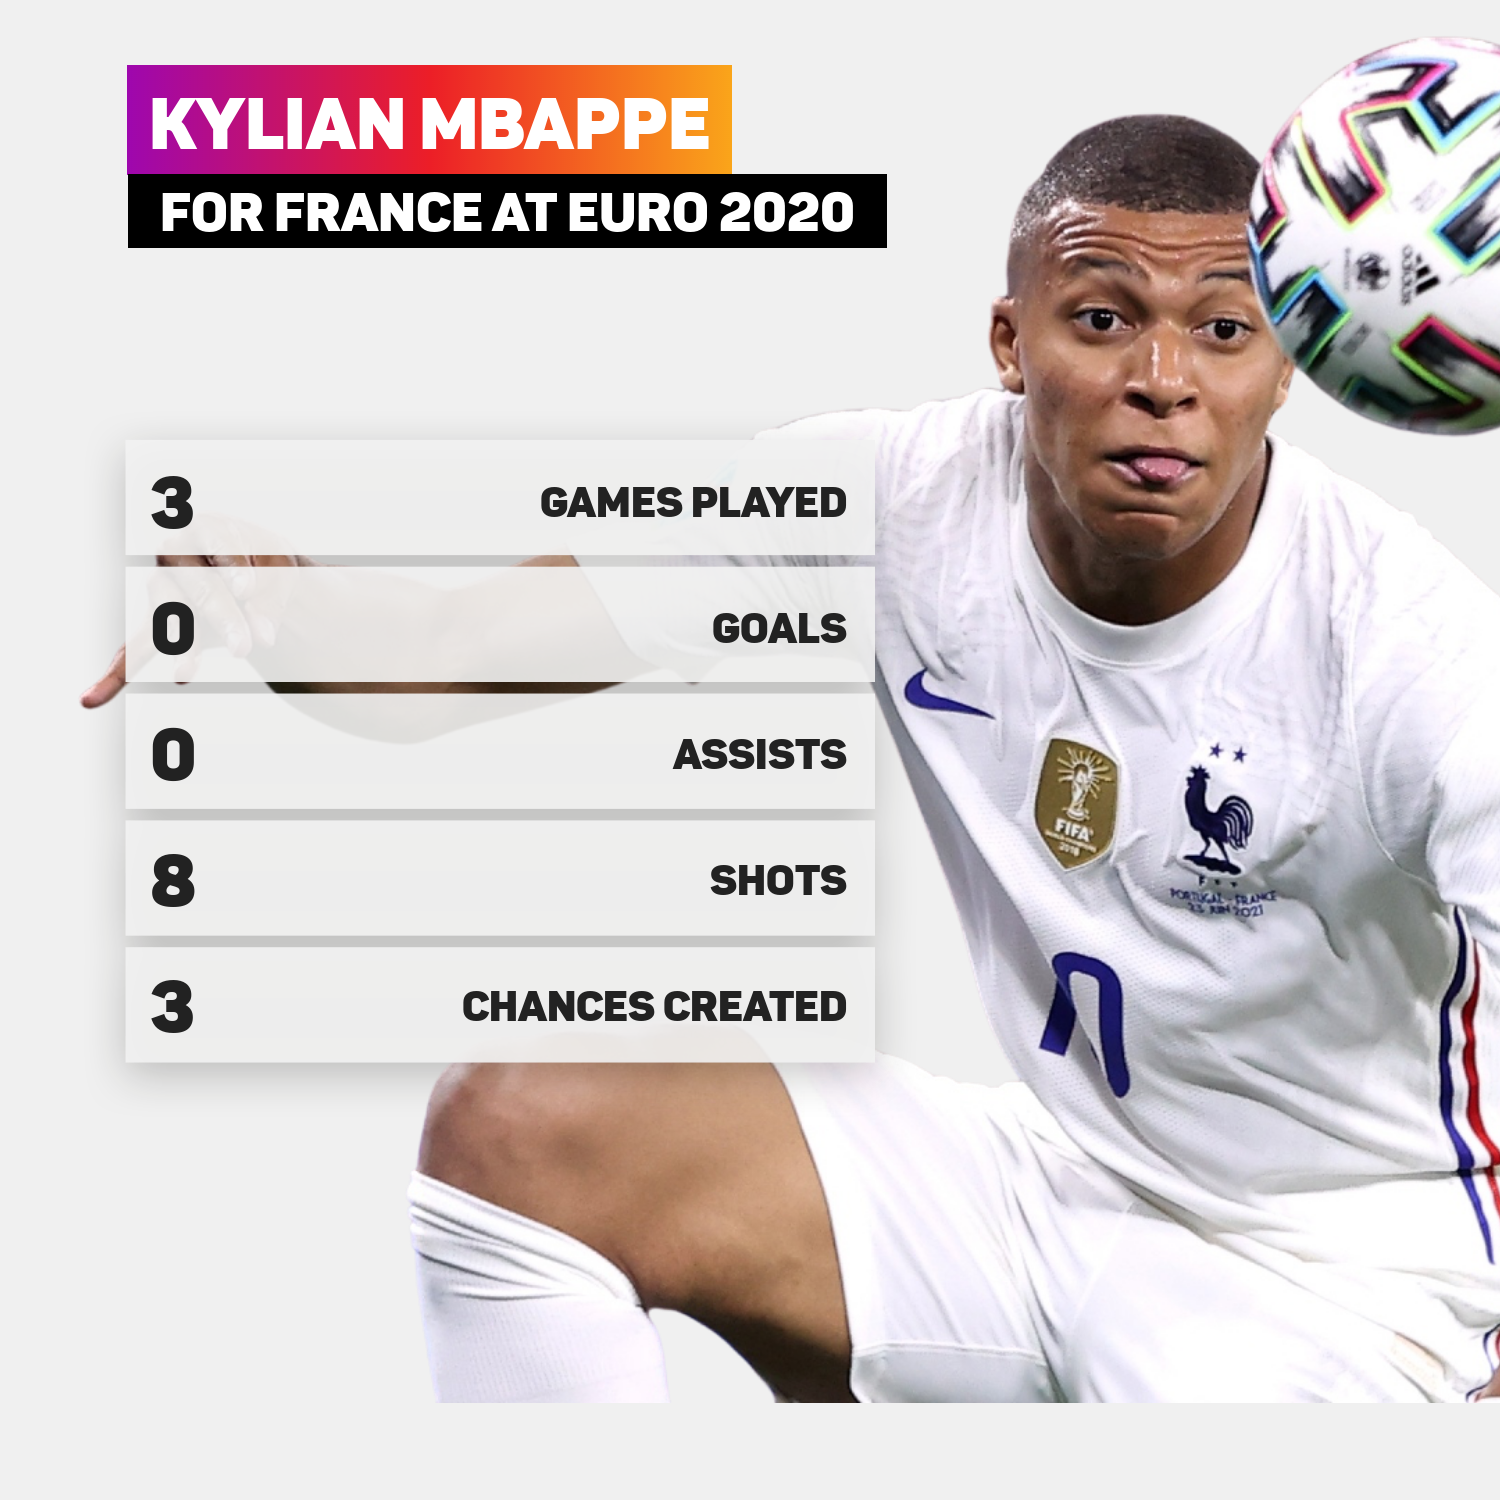 Kylian Mbappe at Euro 2020